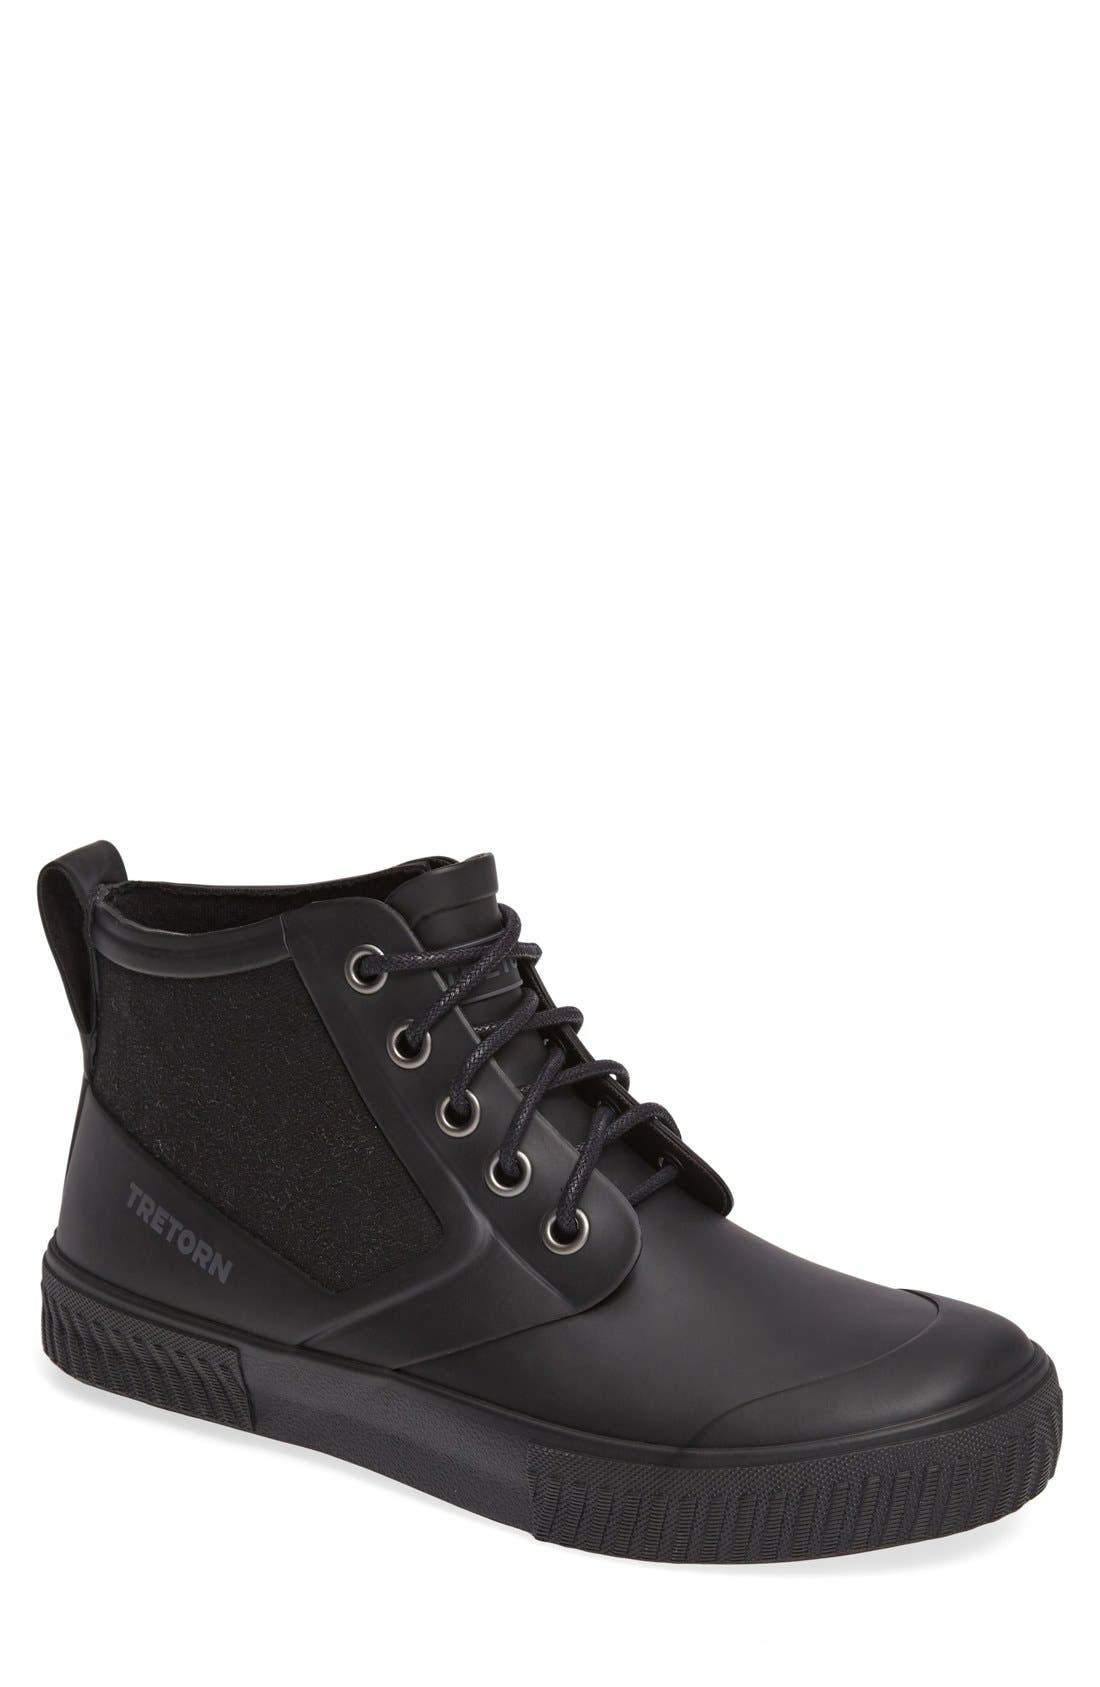 Mid Top Lace-Up Waterproof Rain Boot,                         Main,                         color, BLACK